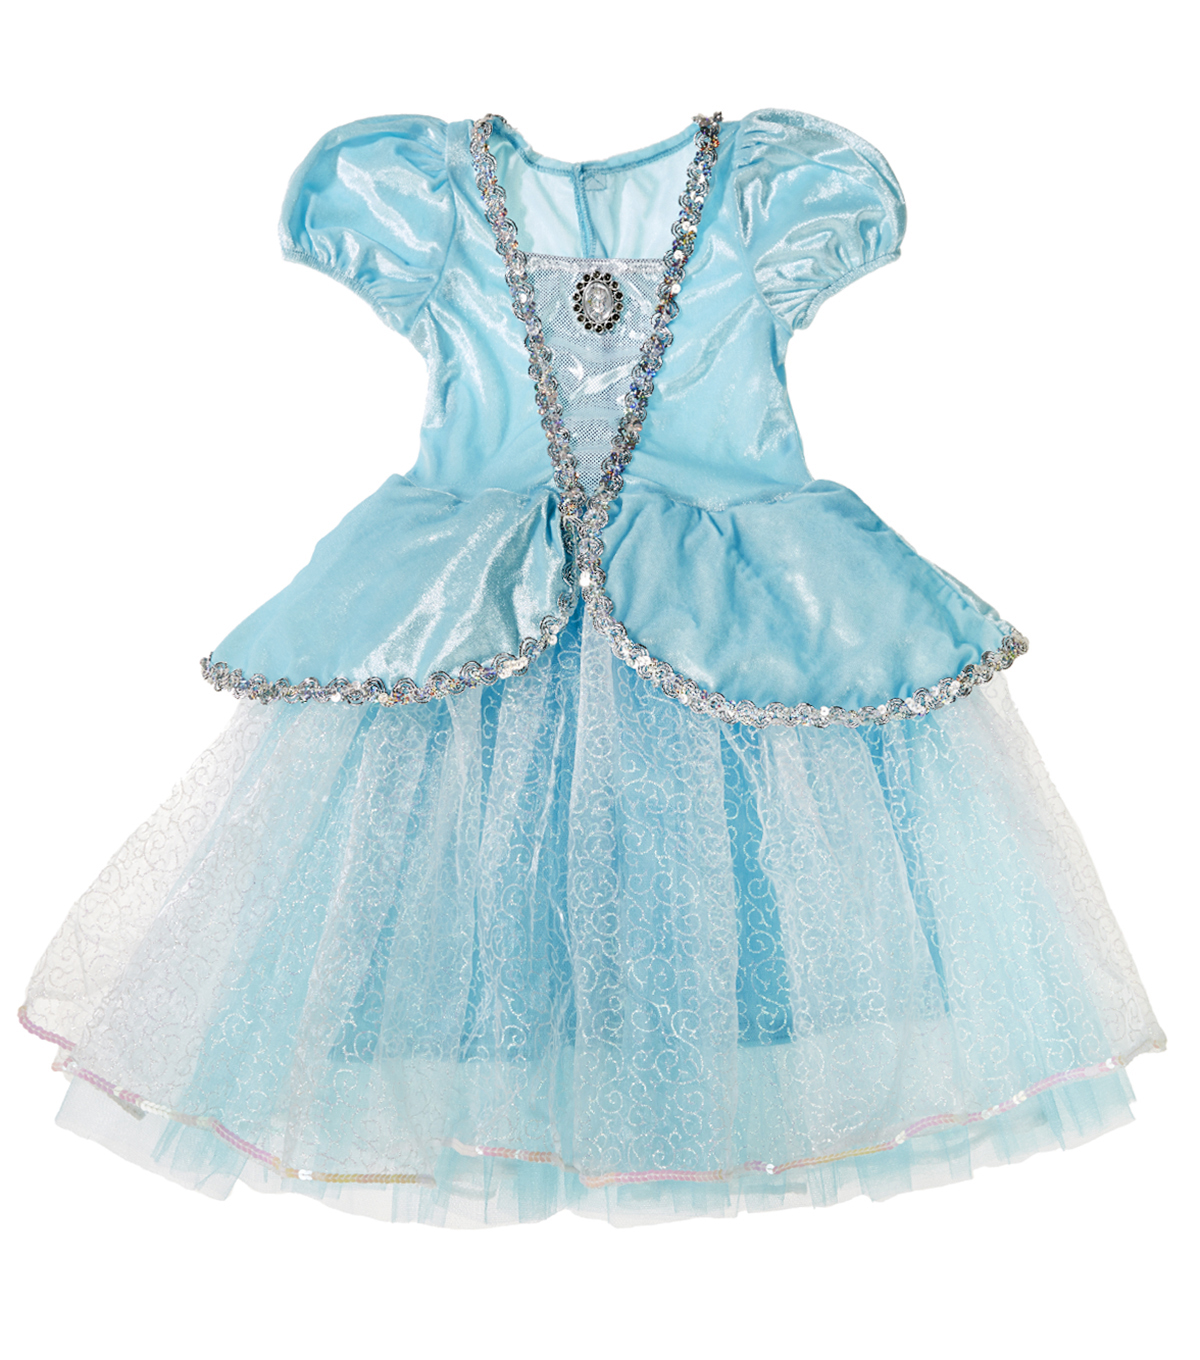 Fashion & Fluff™ Blue Silver Princess Dress